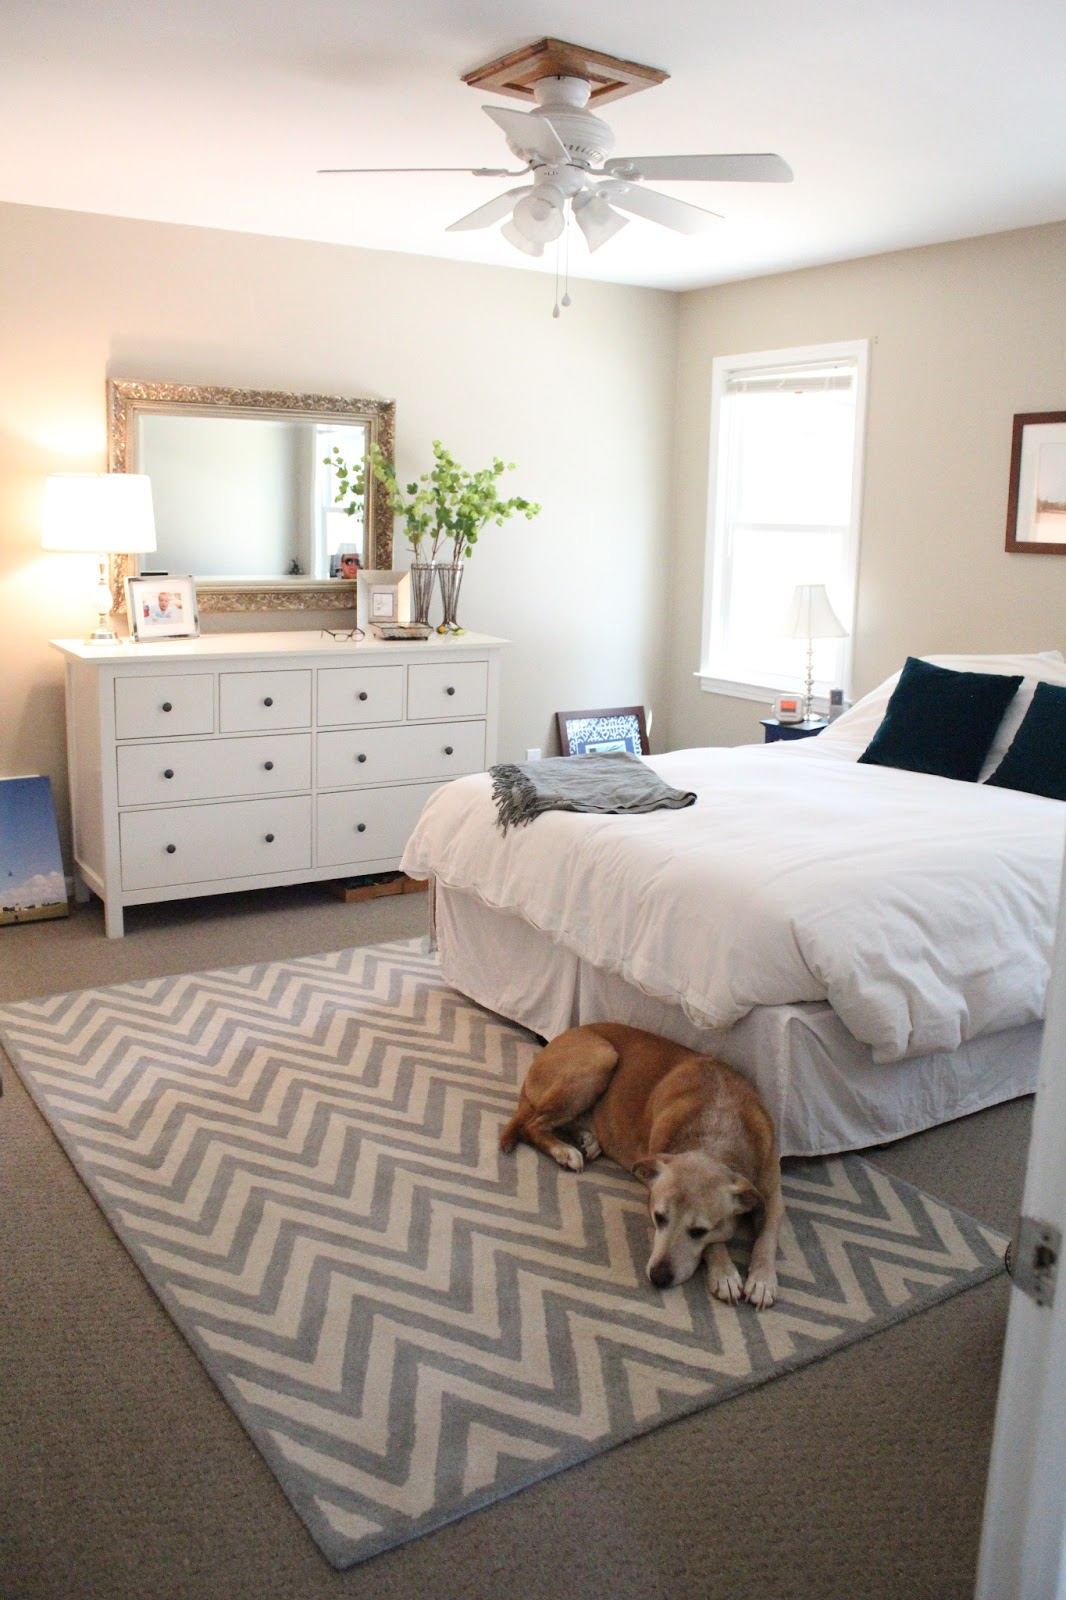 extraordinary simple master bedroom | Ten June: Our Rental House: A Master Bedroom Tour